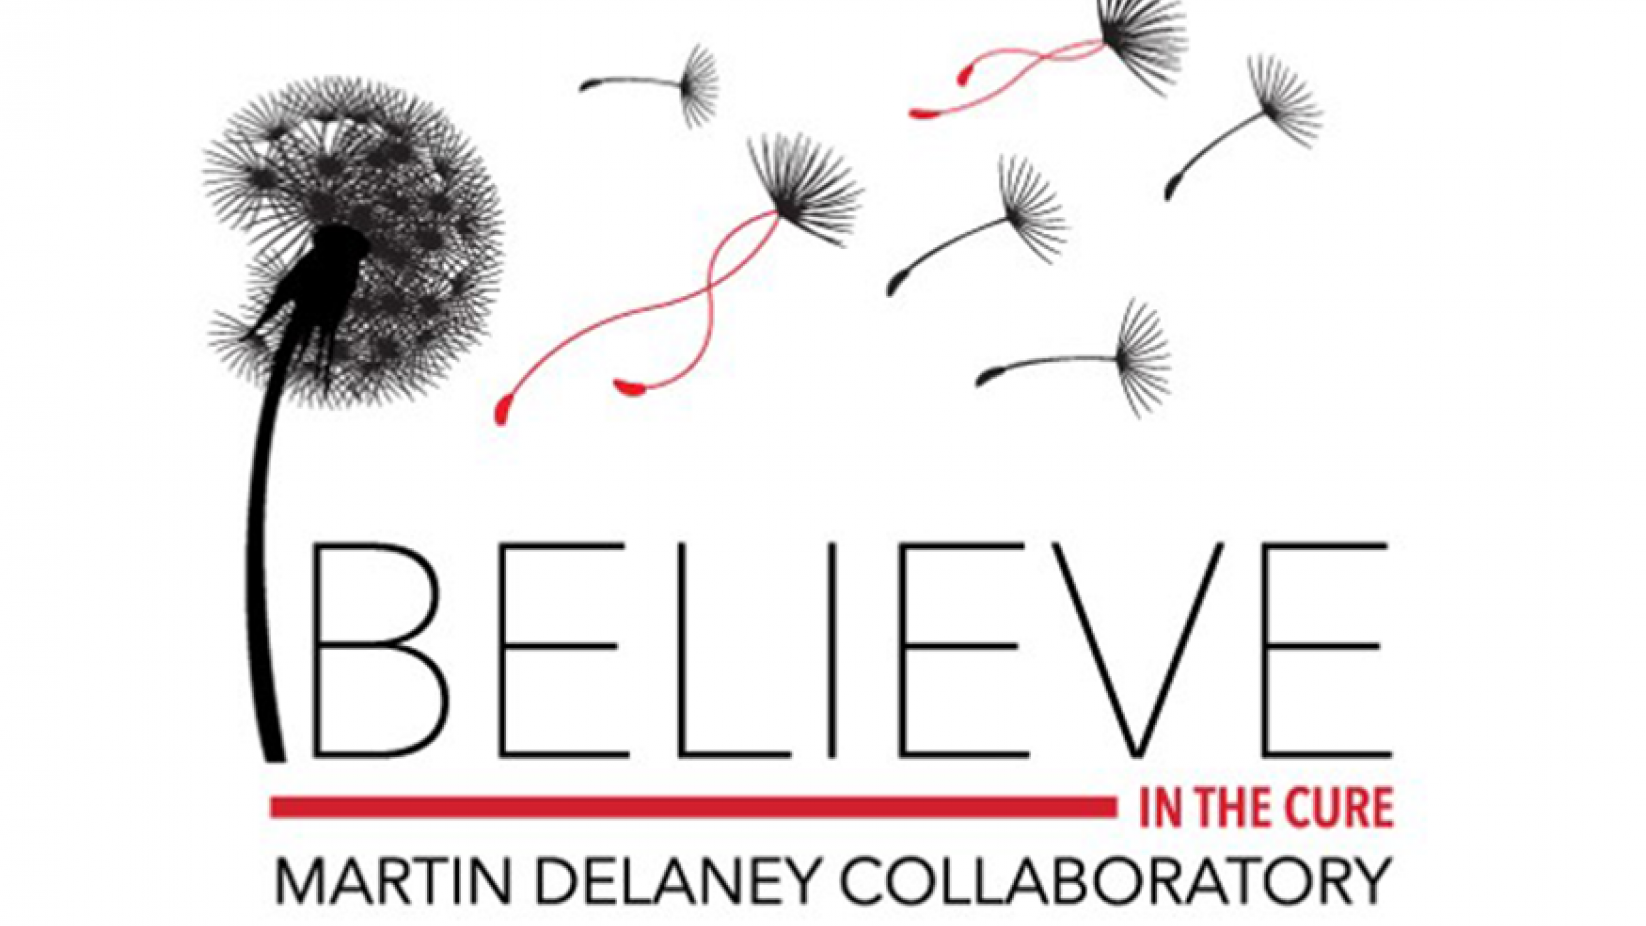 Believe in the Cure: Martin Delaney Collaboratory